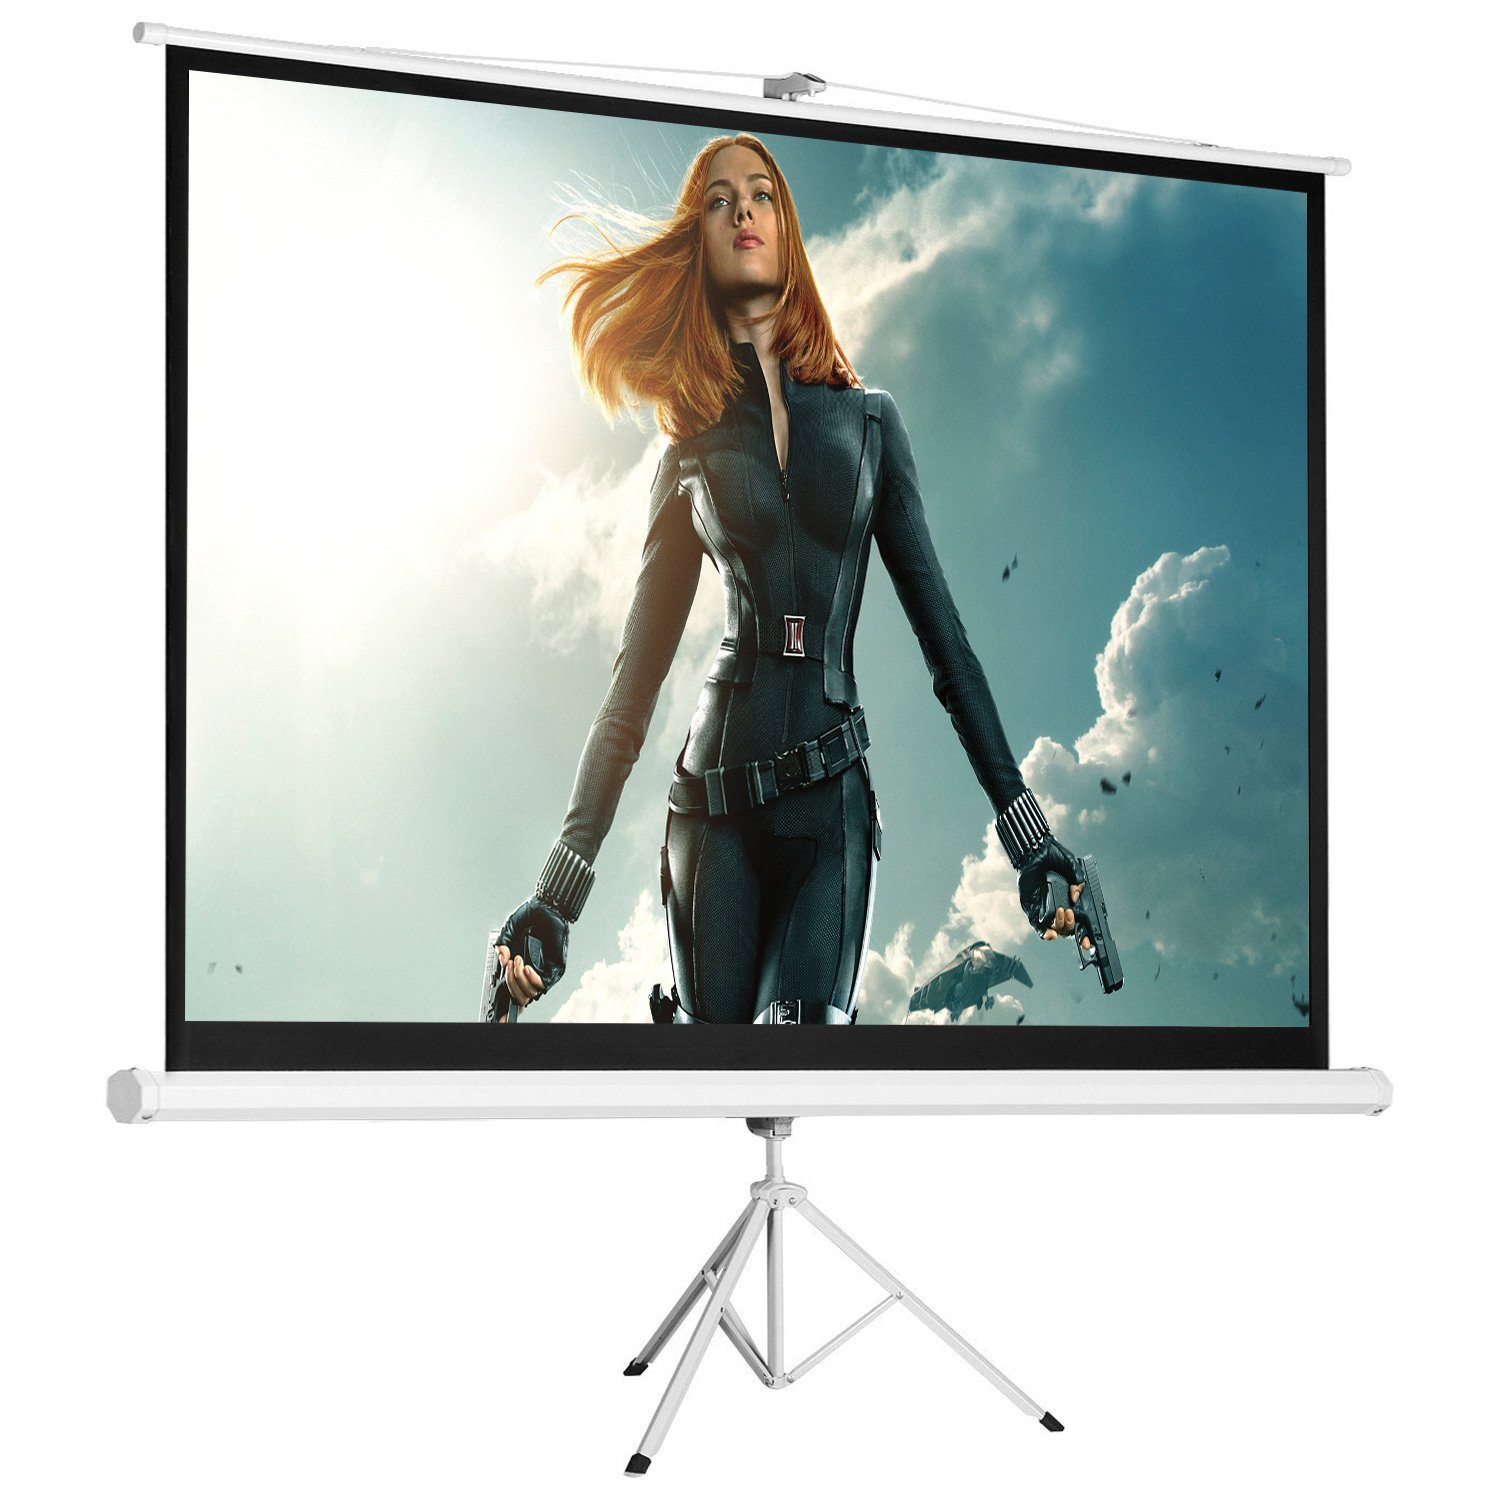 Cloud Mountain 84'' 4:3 HD Portable Tripod Stand Projector Screen Home Office Multi Aspect Ratio Home Theater Pull Up Matte White 1.3 Gain